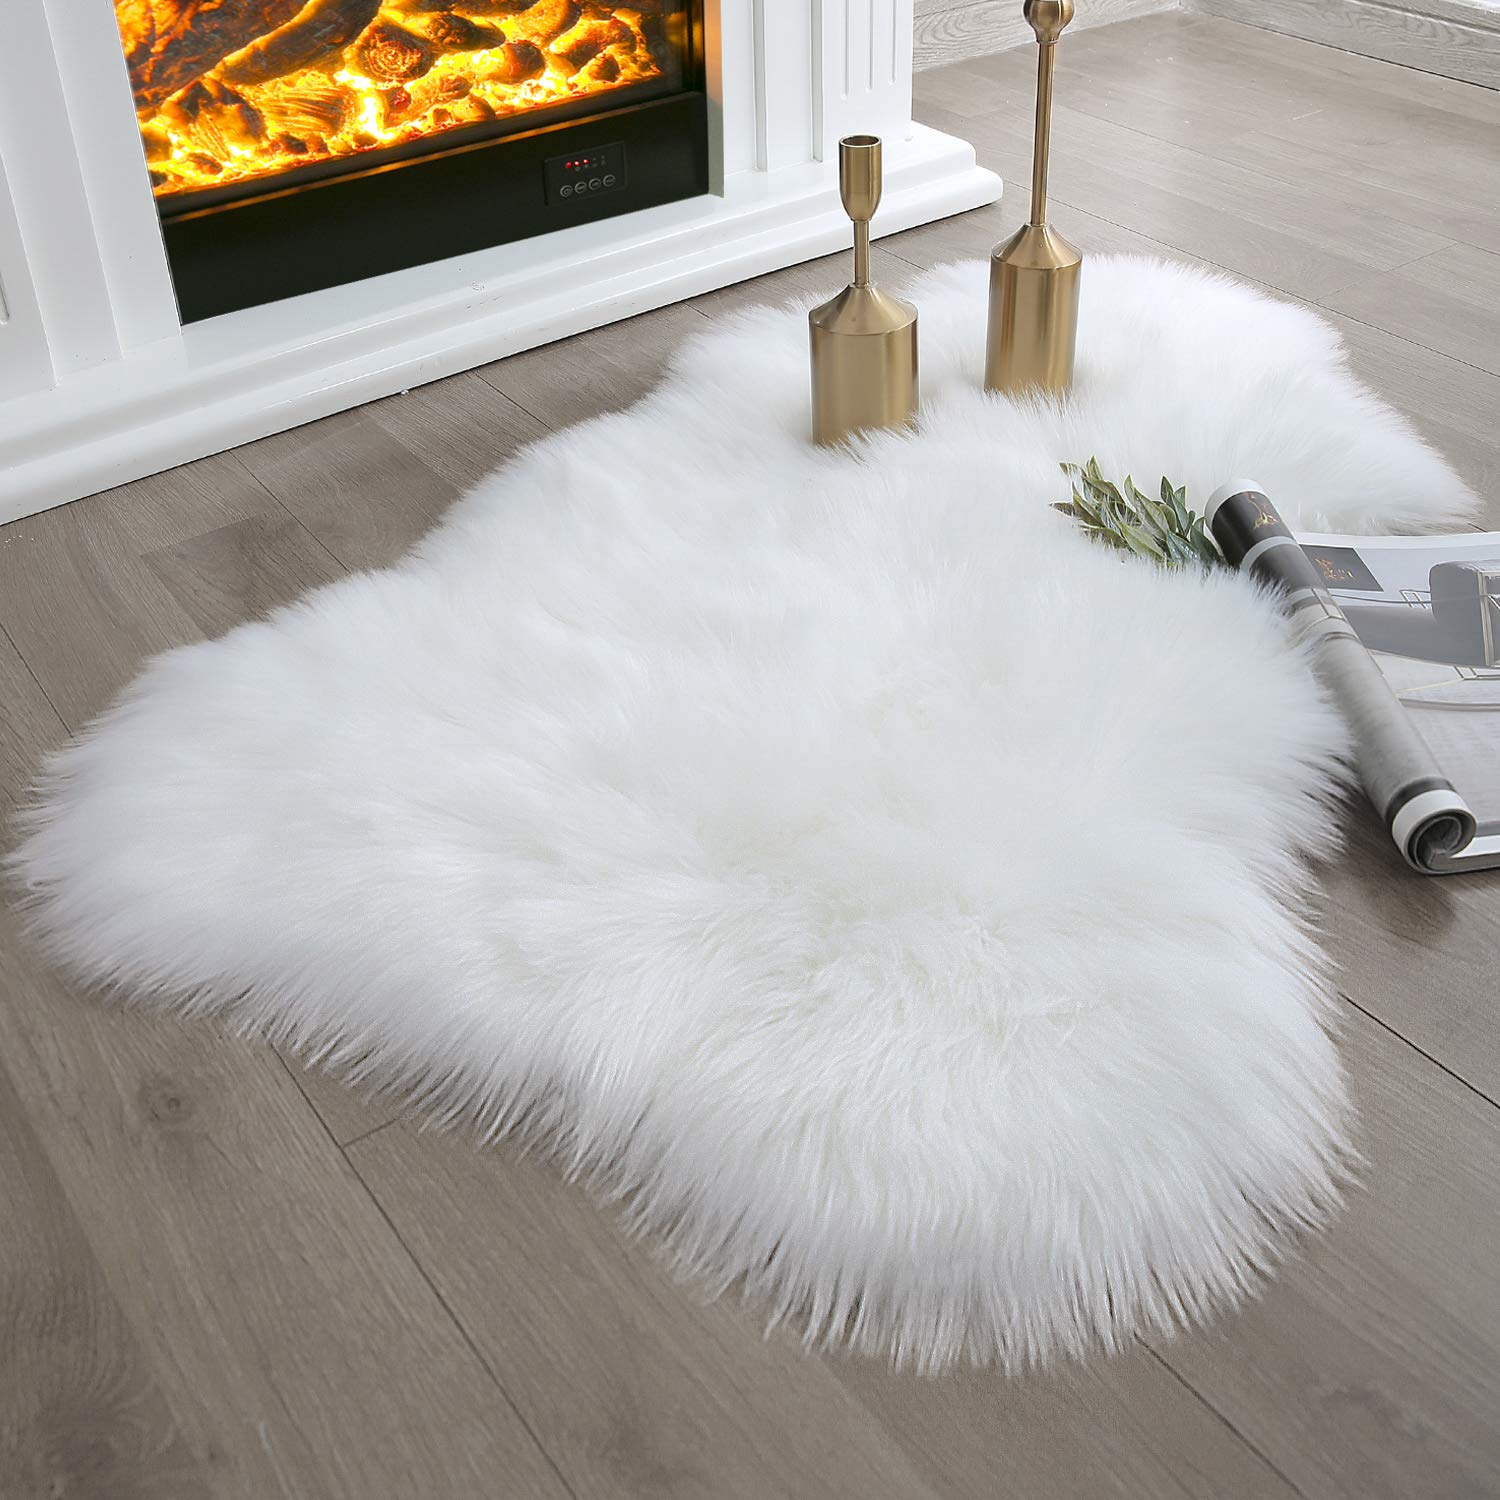 Ashler Soft Faux Sheepskin Fur Chair Couch Cover White Area Rug Bedroom